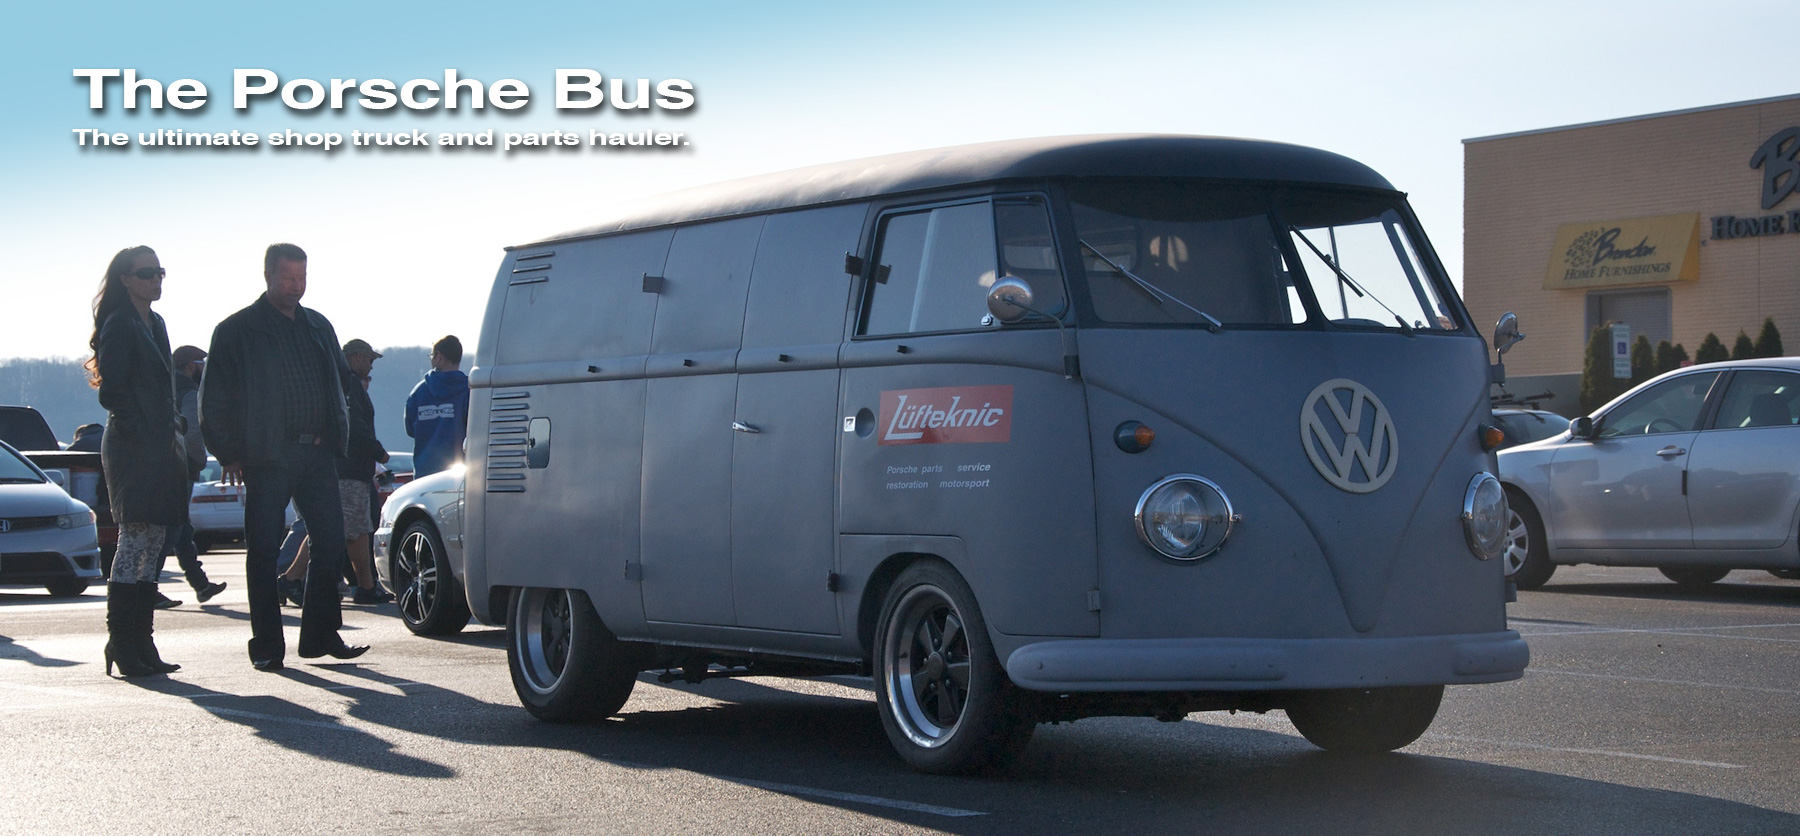 Porschebus slider image, showing the bus in a parking lot with people looking on